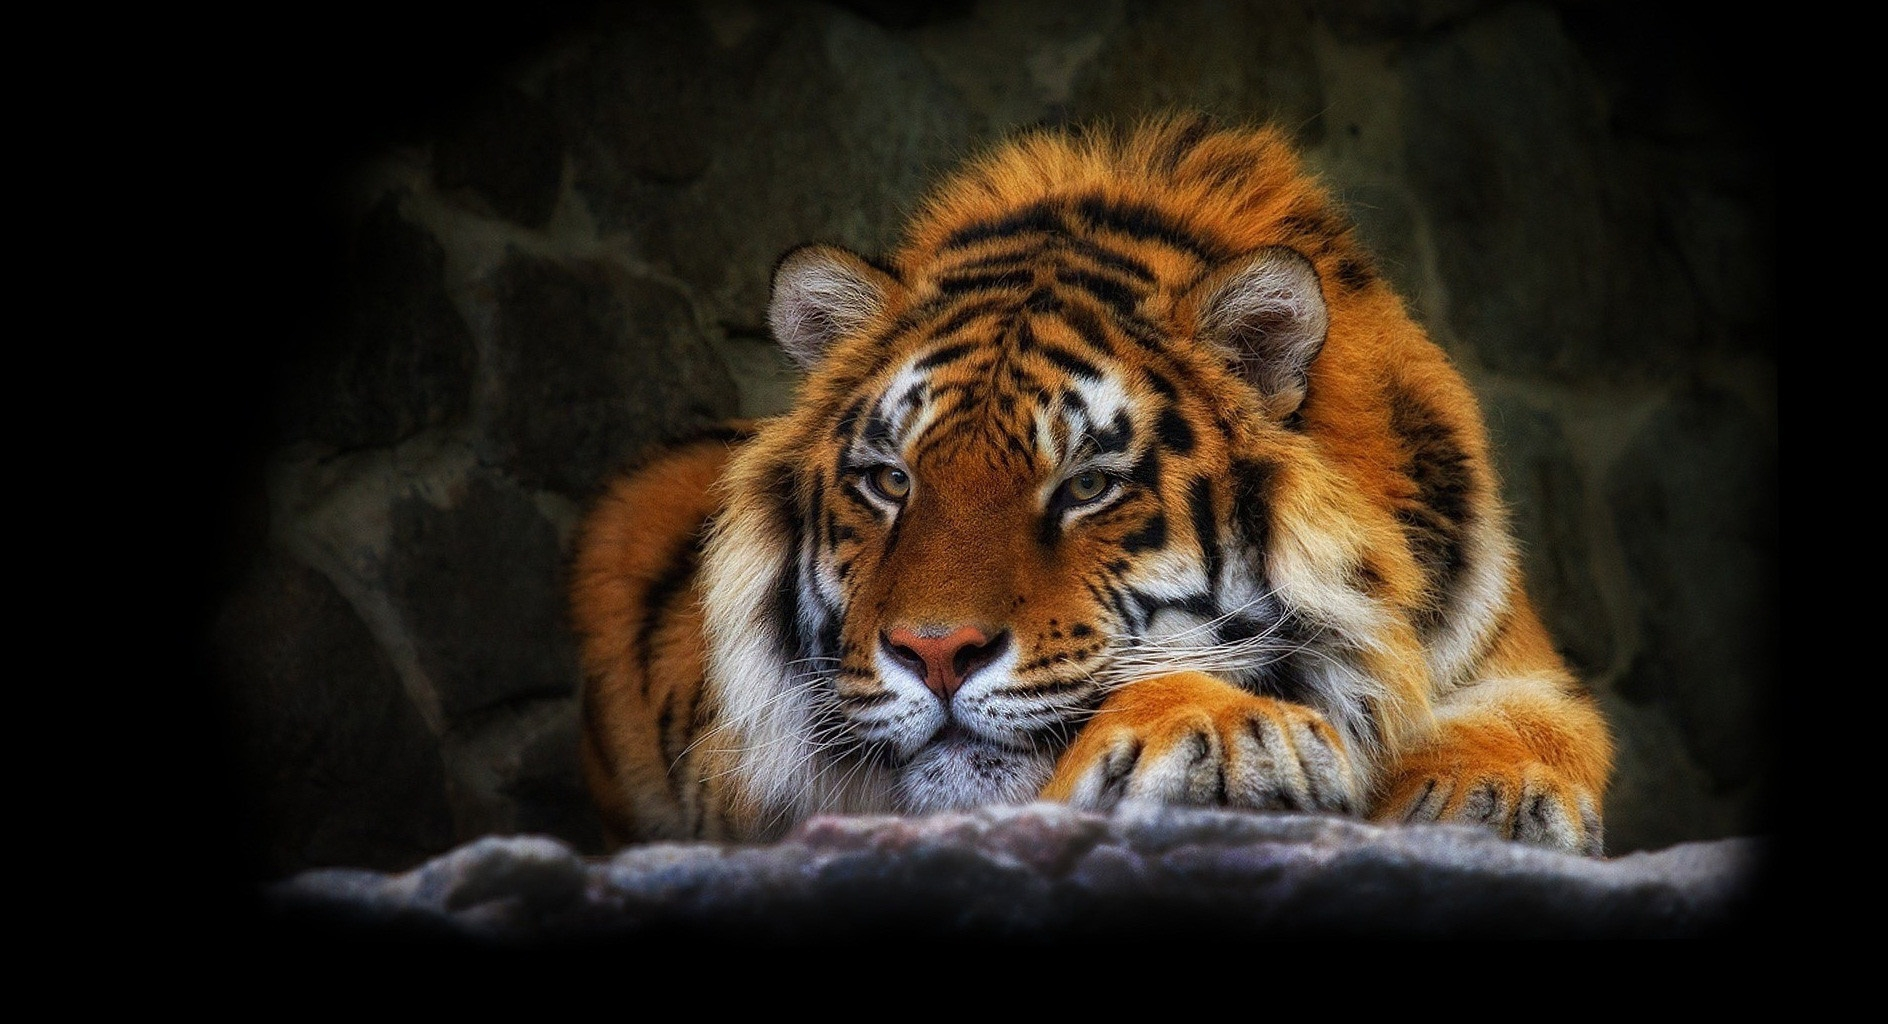 129737 download wallpaper Animals, Tiger, Wild Cat, Wildcat, Dark Background screensavers and pictures for free